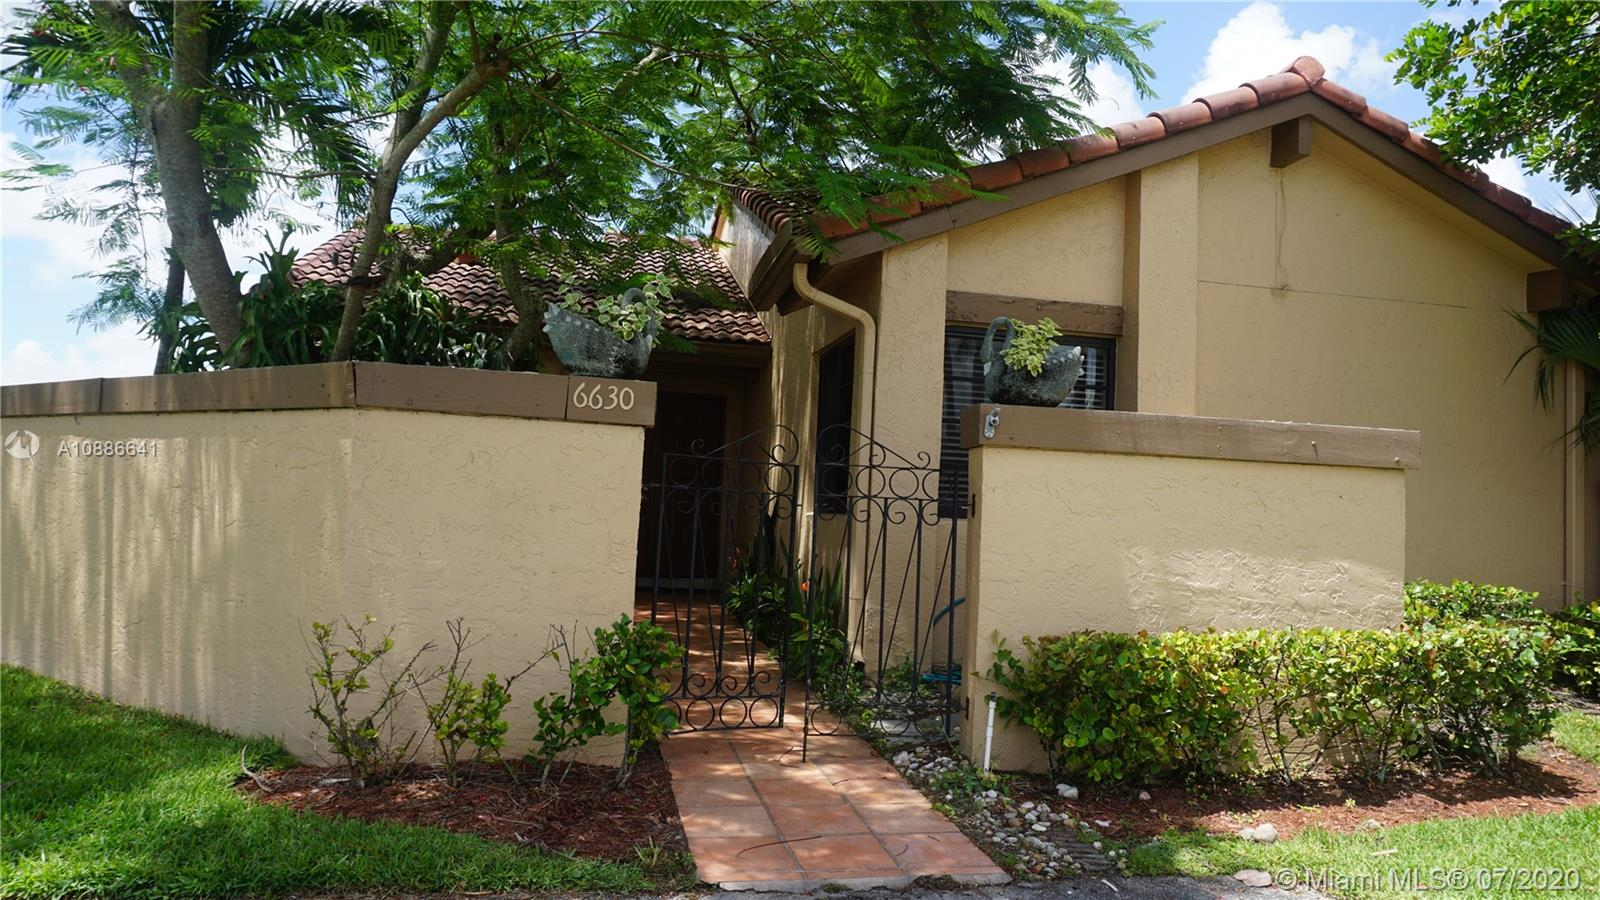 6630 NW 180 ter  For Sale A10886641, FL